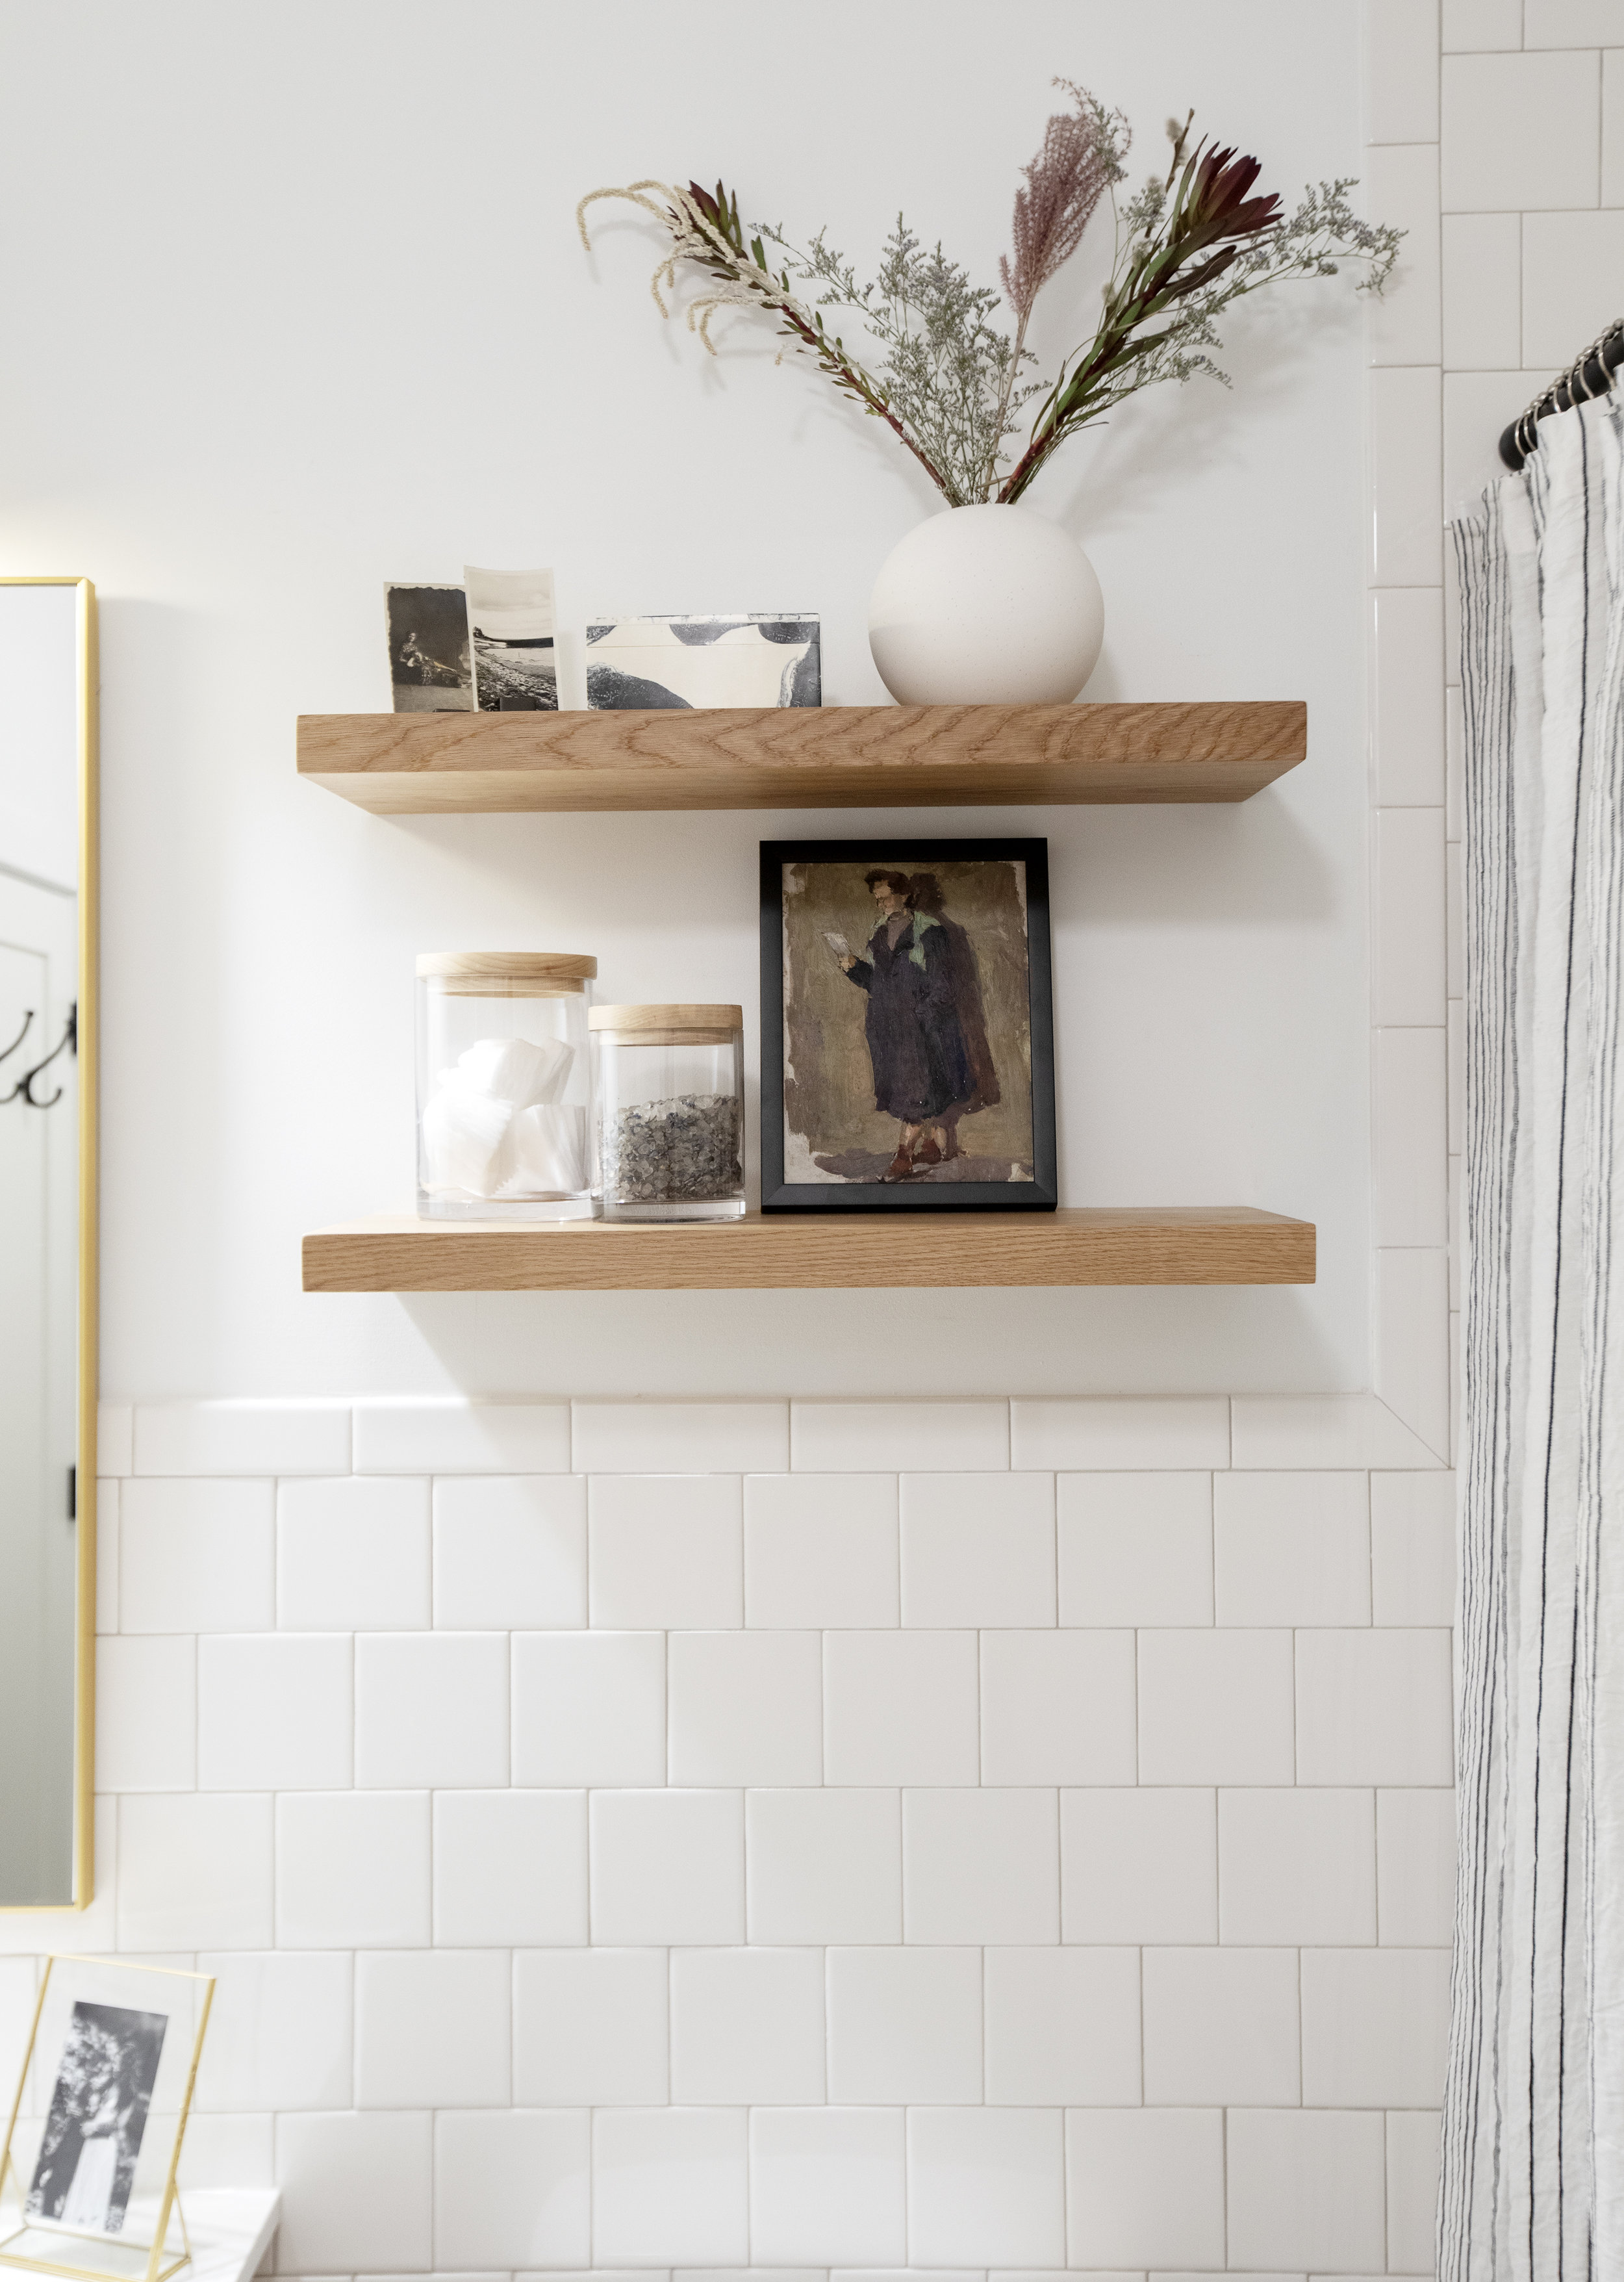 The bathroom of Prince Edward Street has two cherry wood shelves that have contain a decorative vase, a framed portrait and two lidded jars.